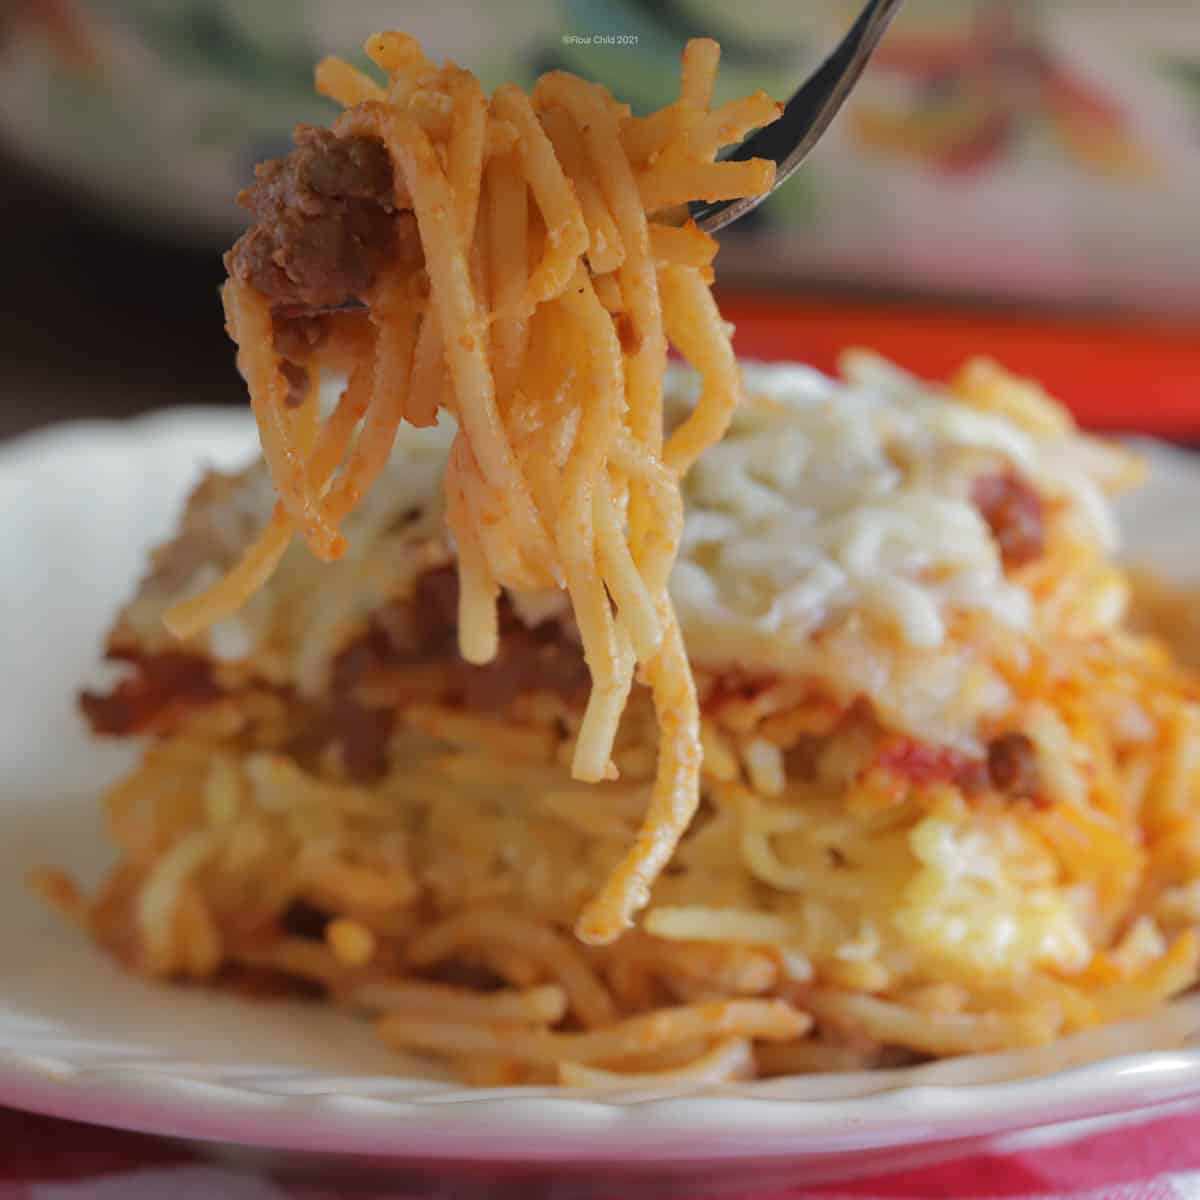 Fork scooping some spaghetti from a slice of baked spaghetti on a plate